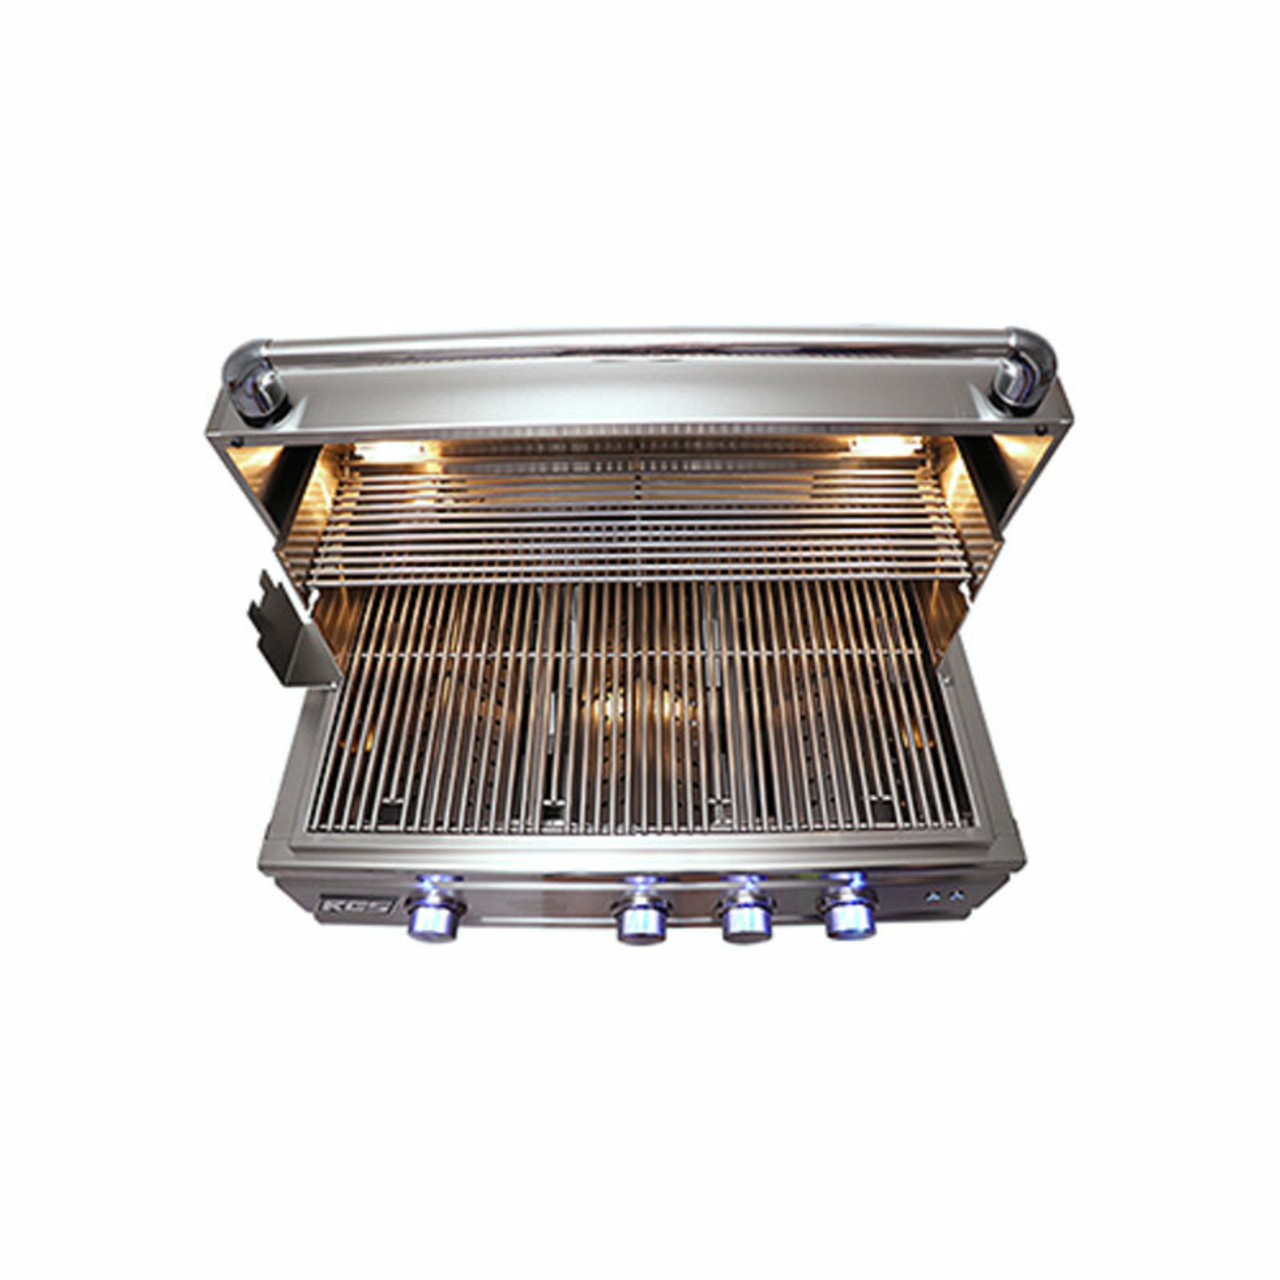 RCS Cast Stainless Steel Burner For Cutlass Pro Series Gas Grills